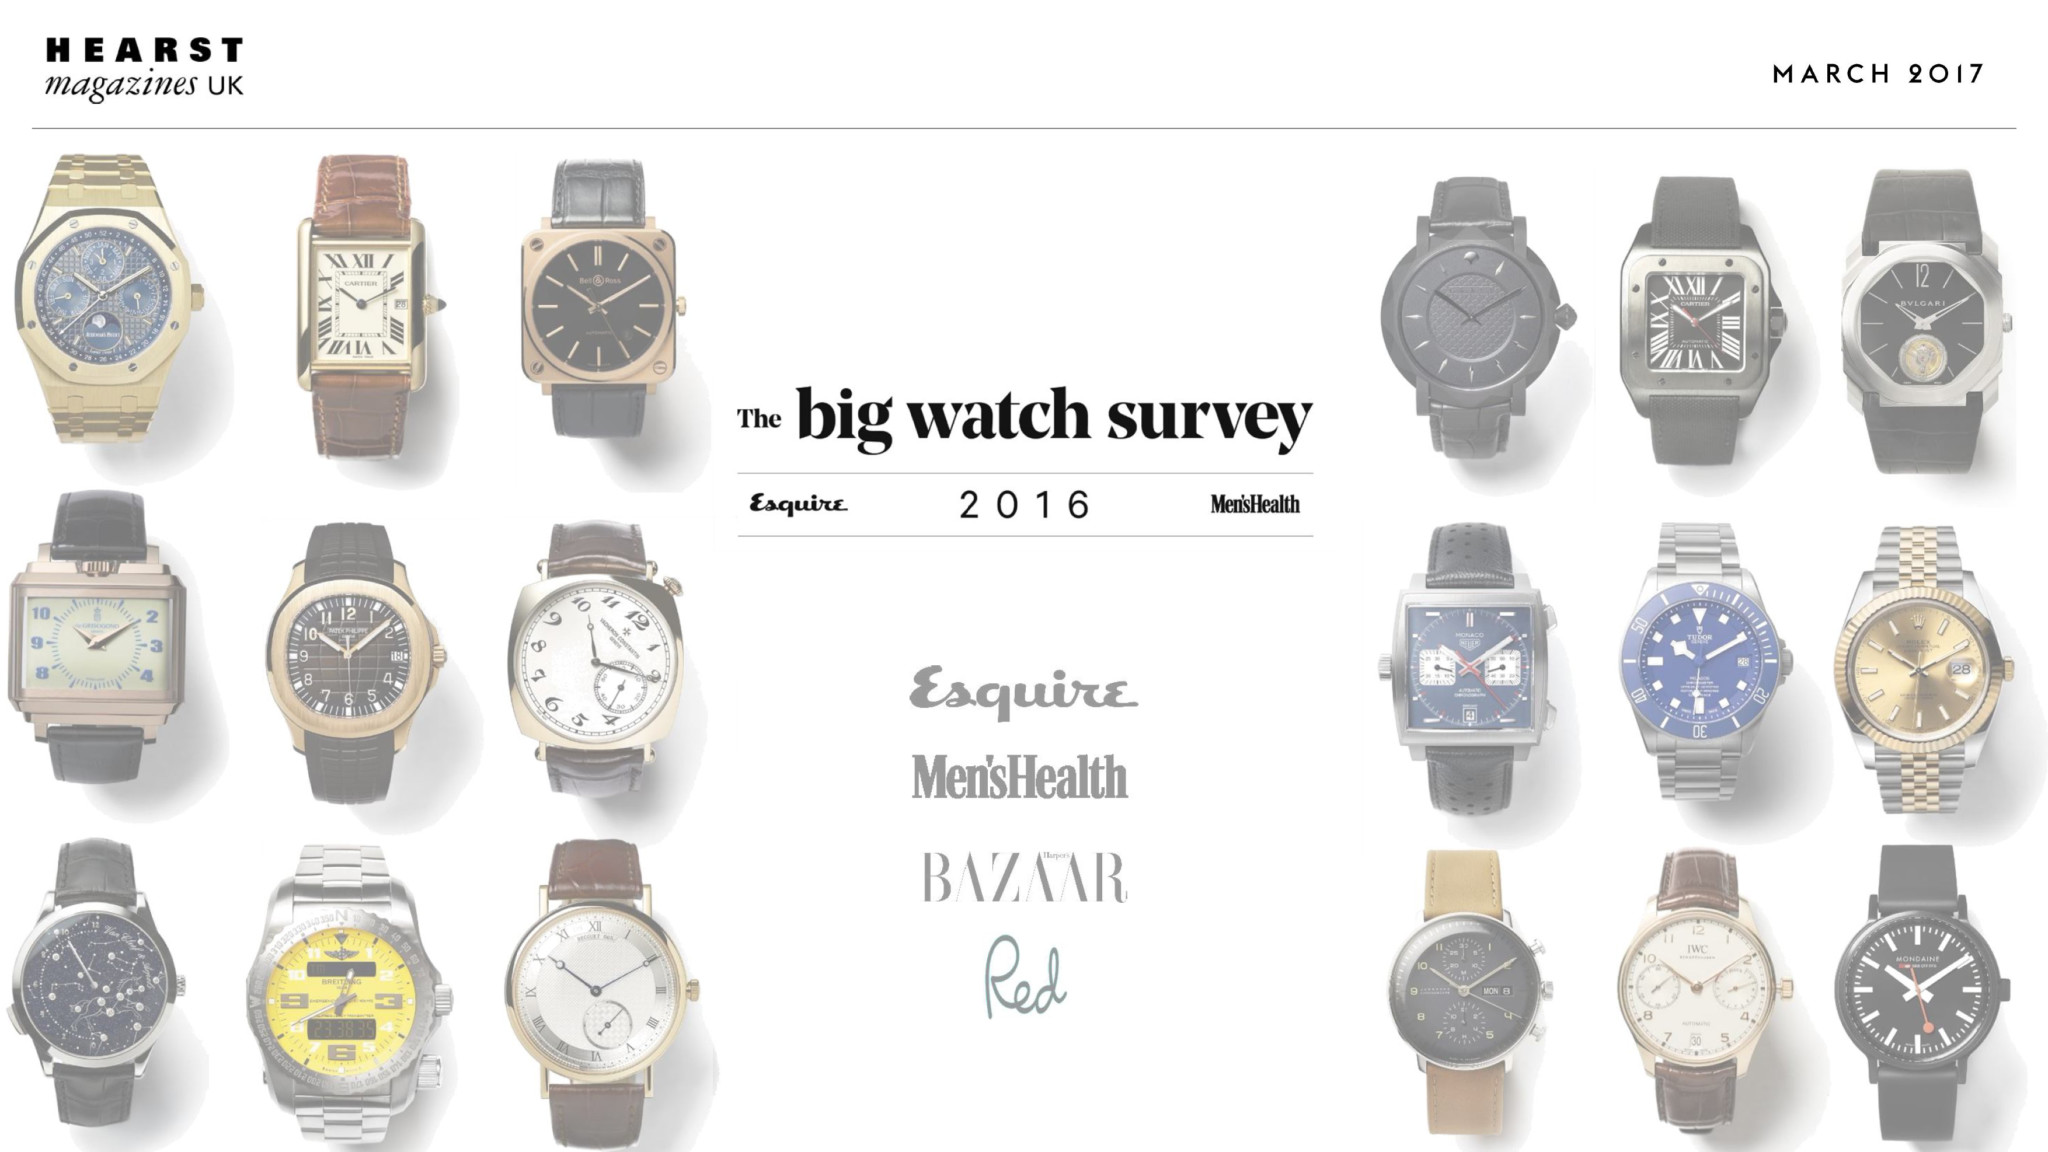 The Big Watch Survey 2016